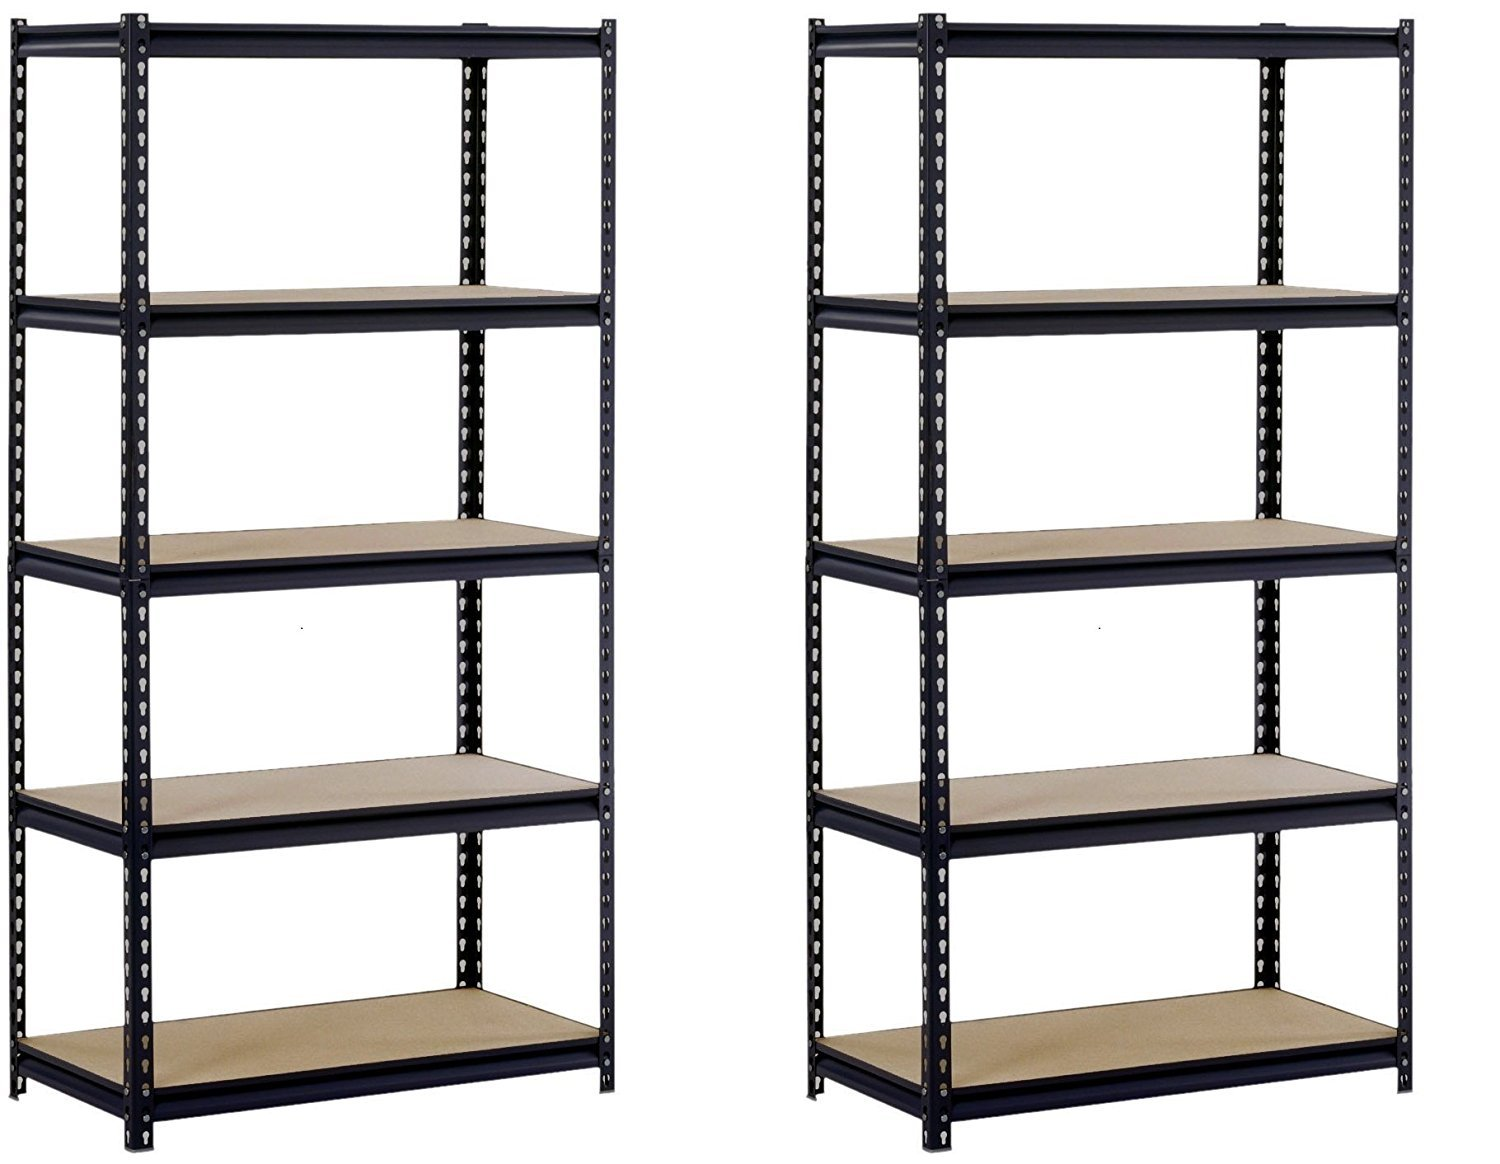 Sandusky/Edsal UR185P-BLK Black Steel Heavy Duty 5-Shelf Shelving Unit, 4000lbs Capacity, 36'' Width x 72'' Height x 18'' Depth (Does not include post couplers) (Pack of 2) by EDSAL